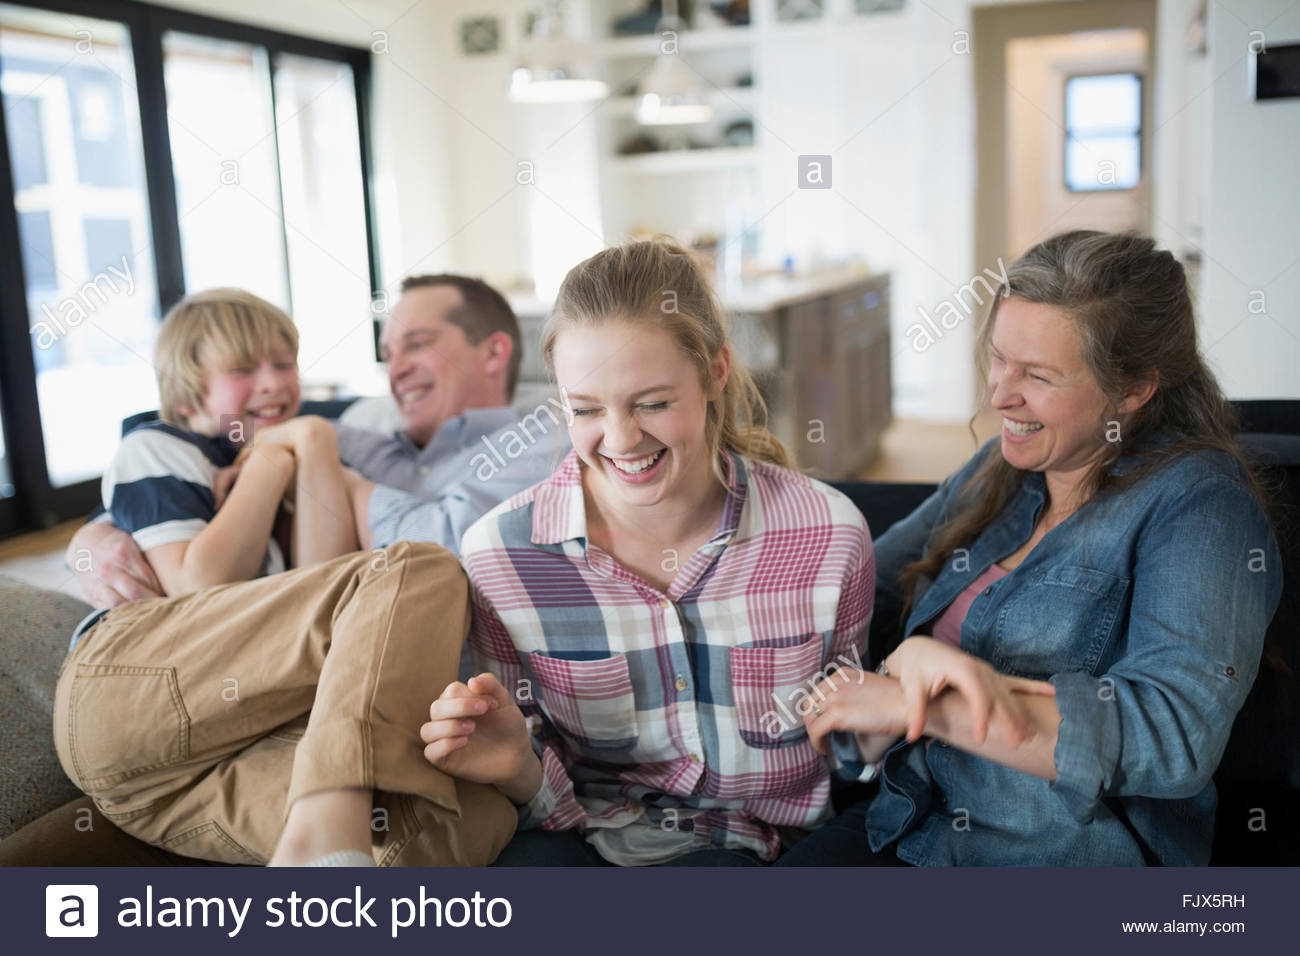 Laughing family on living room sofa - Stock Image